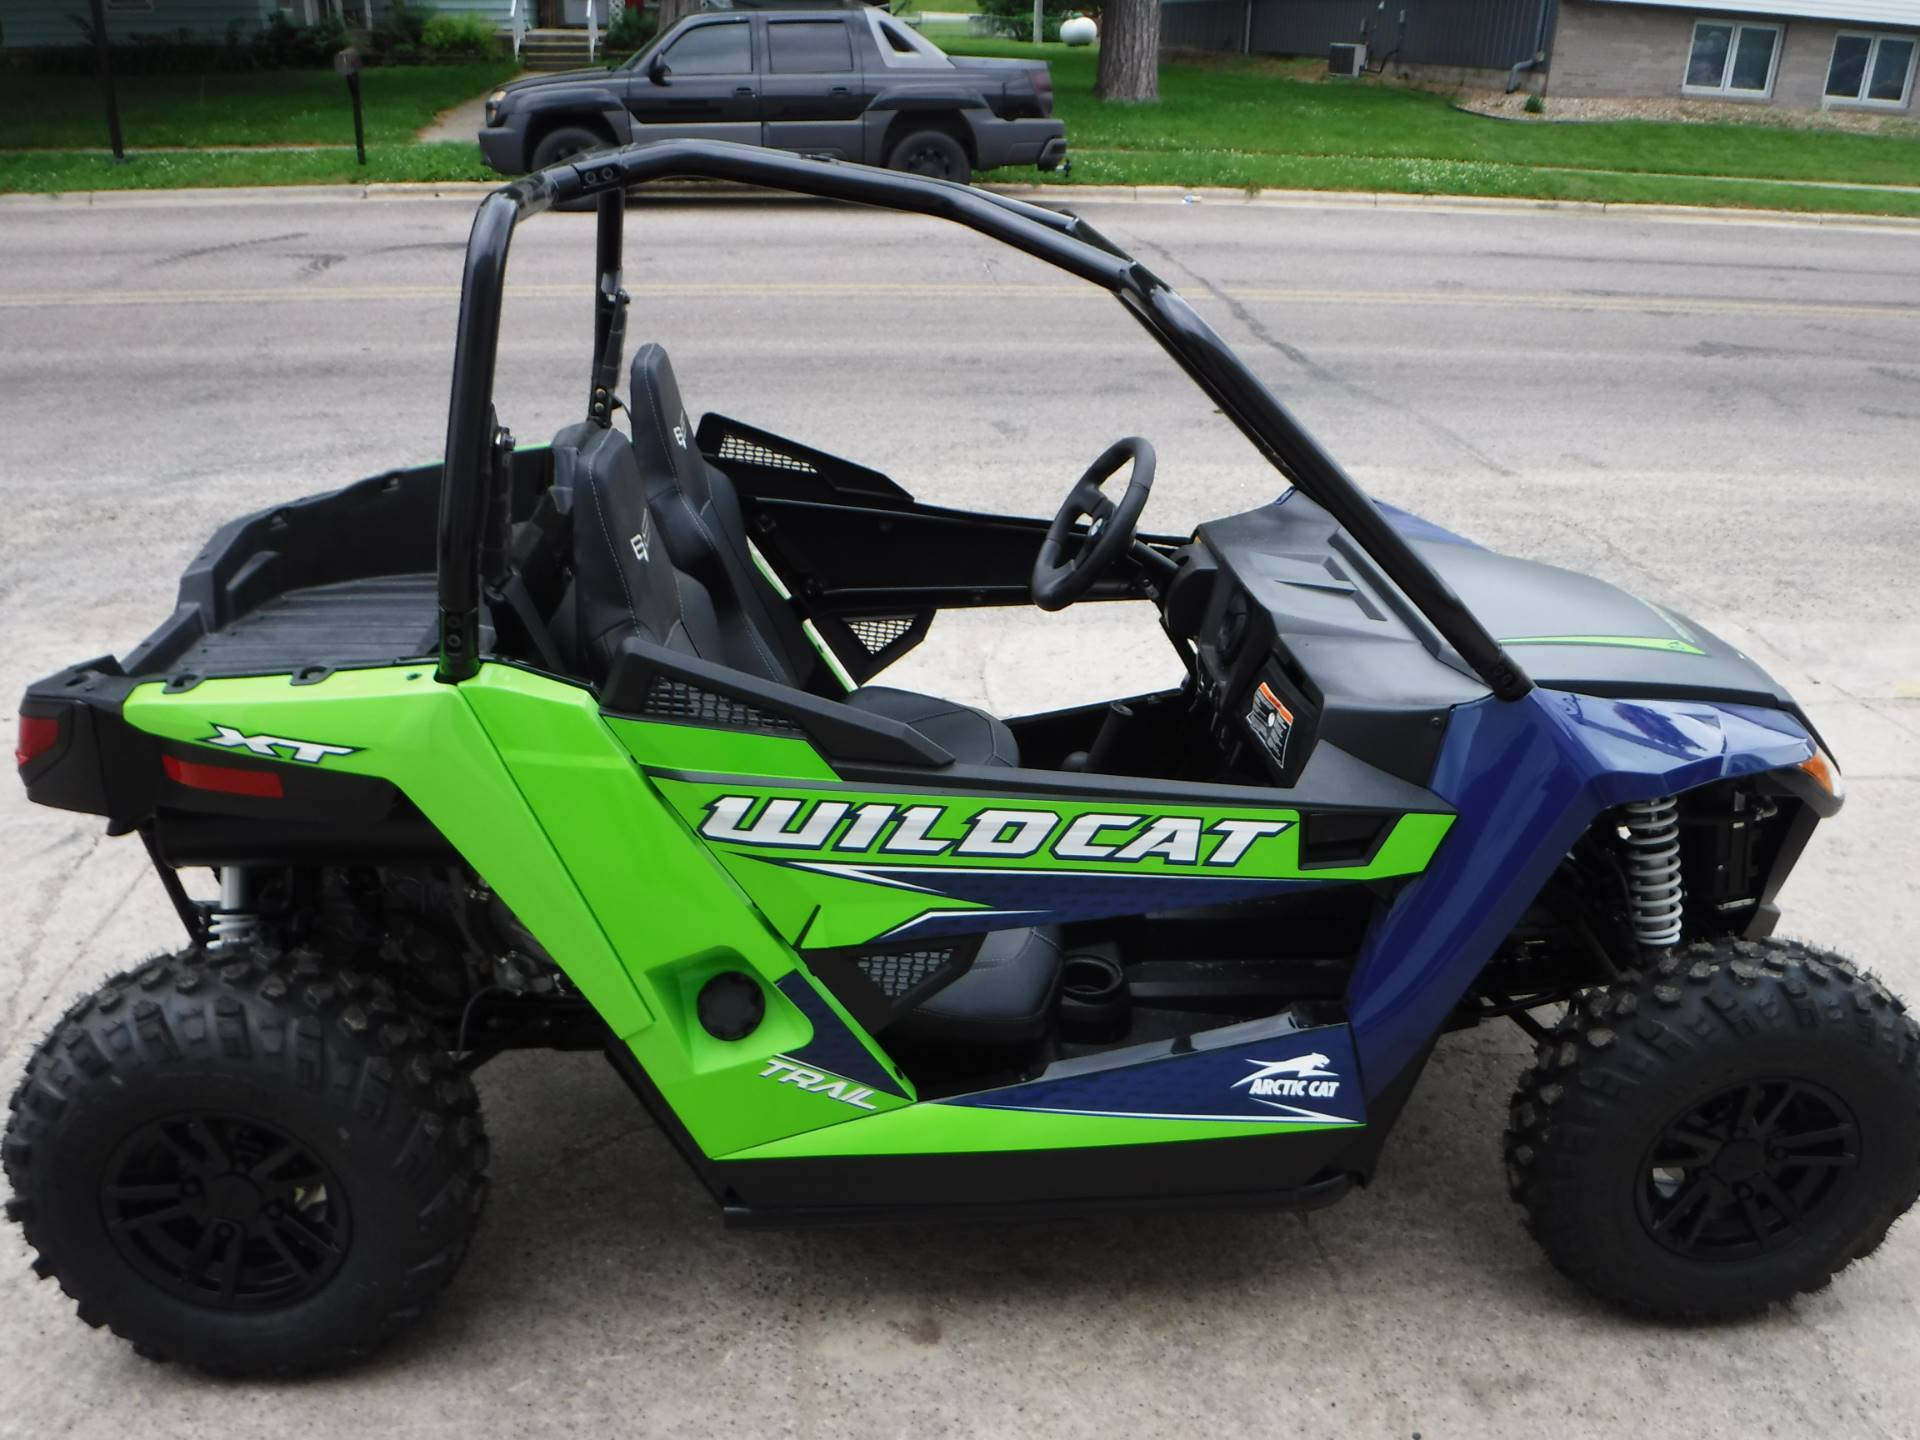 2019 Arctic Cat Wildcat Trail XT in Mazeppa, Minnesota - Photo 3